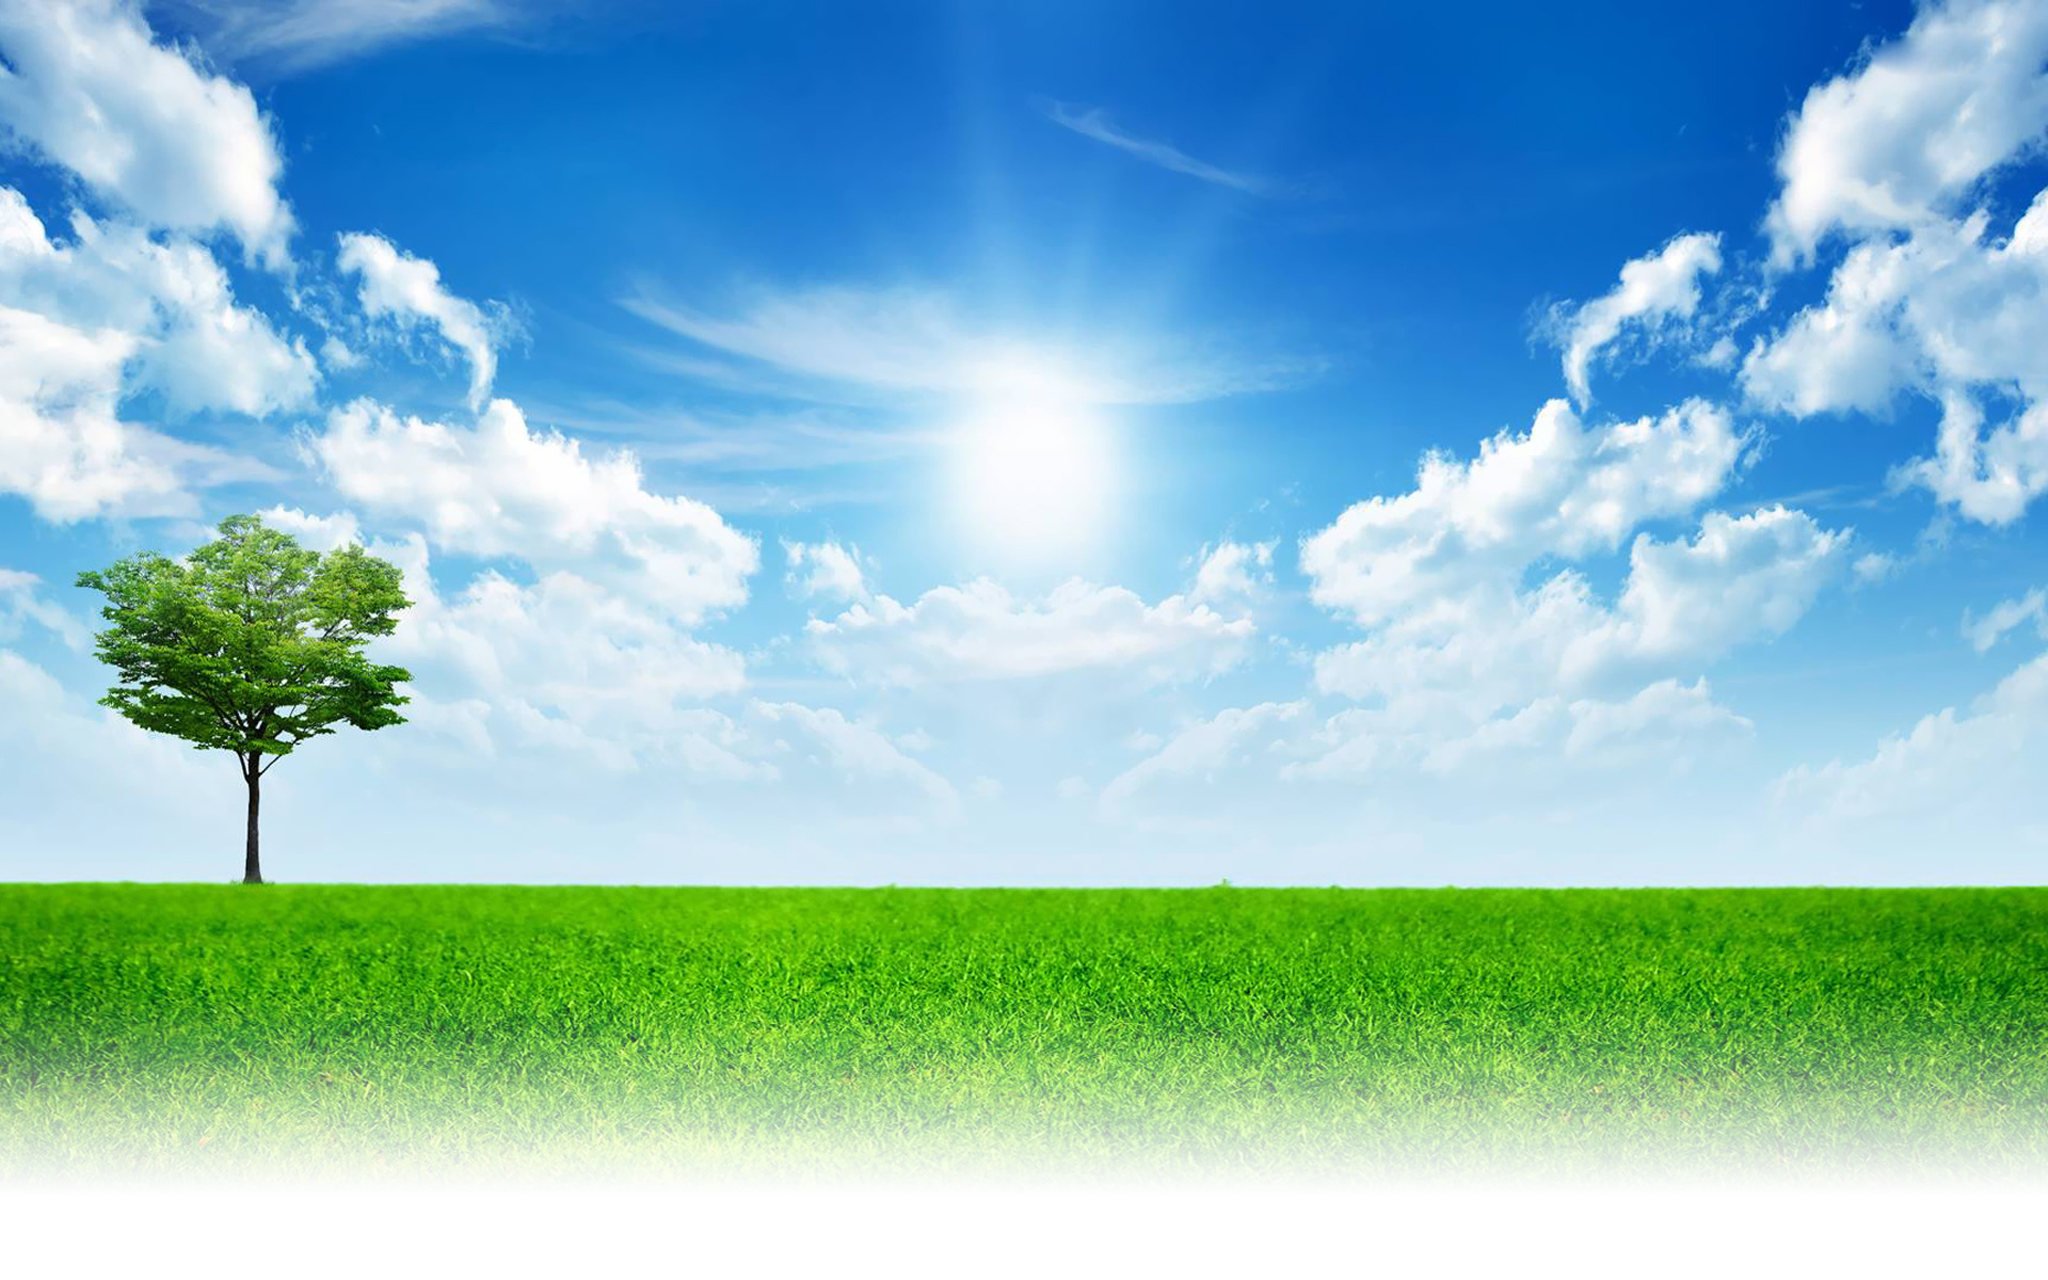 clipart stock Transparent sky. Sunny png images pluspng